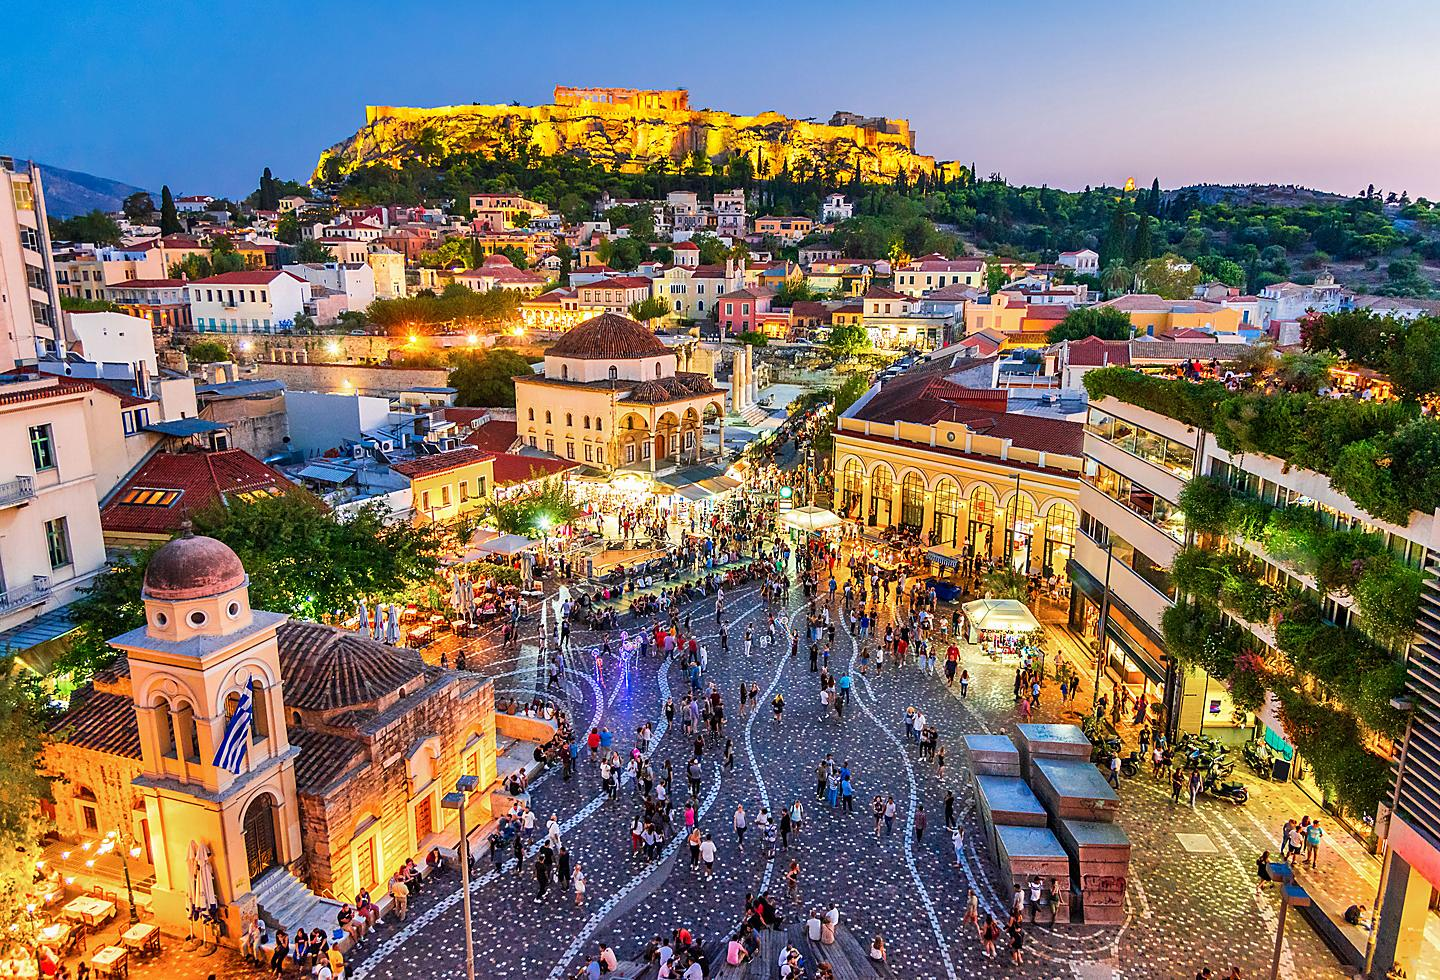 Nightime Plaza in Athens, Greece